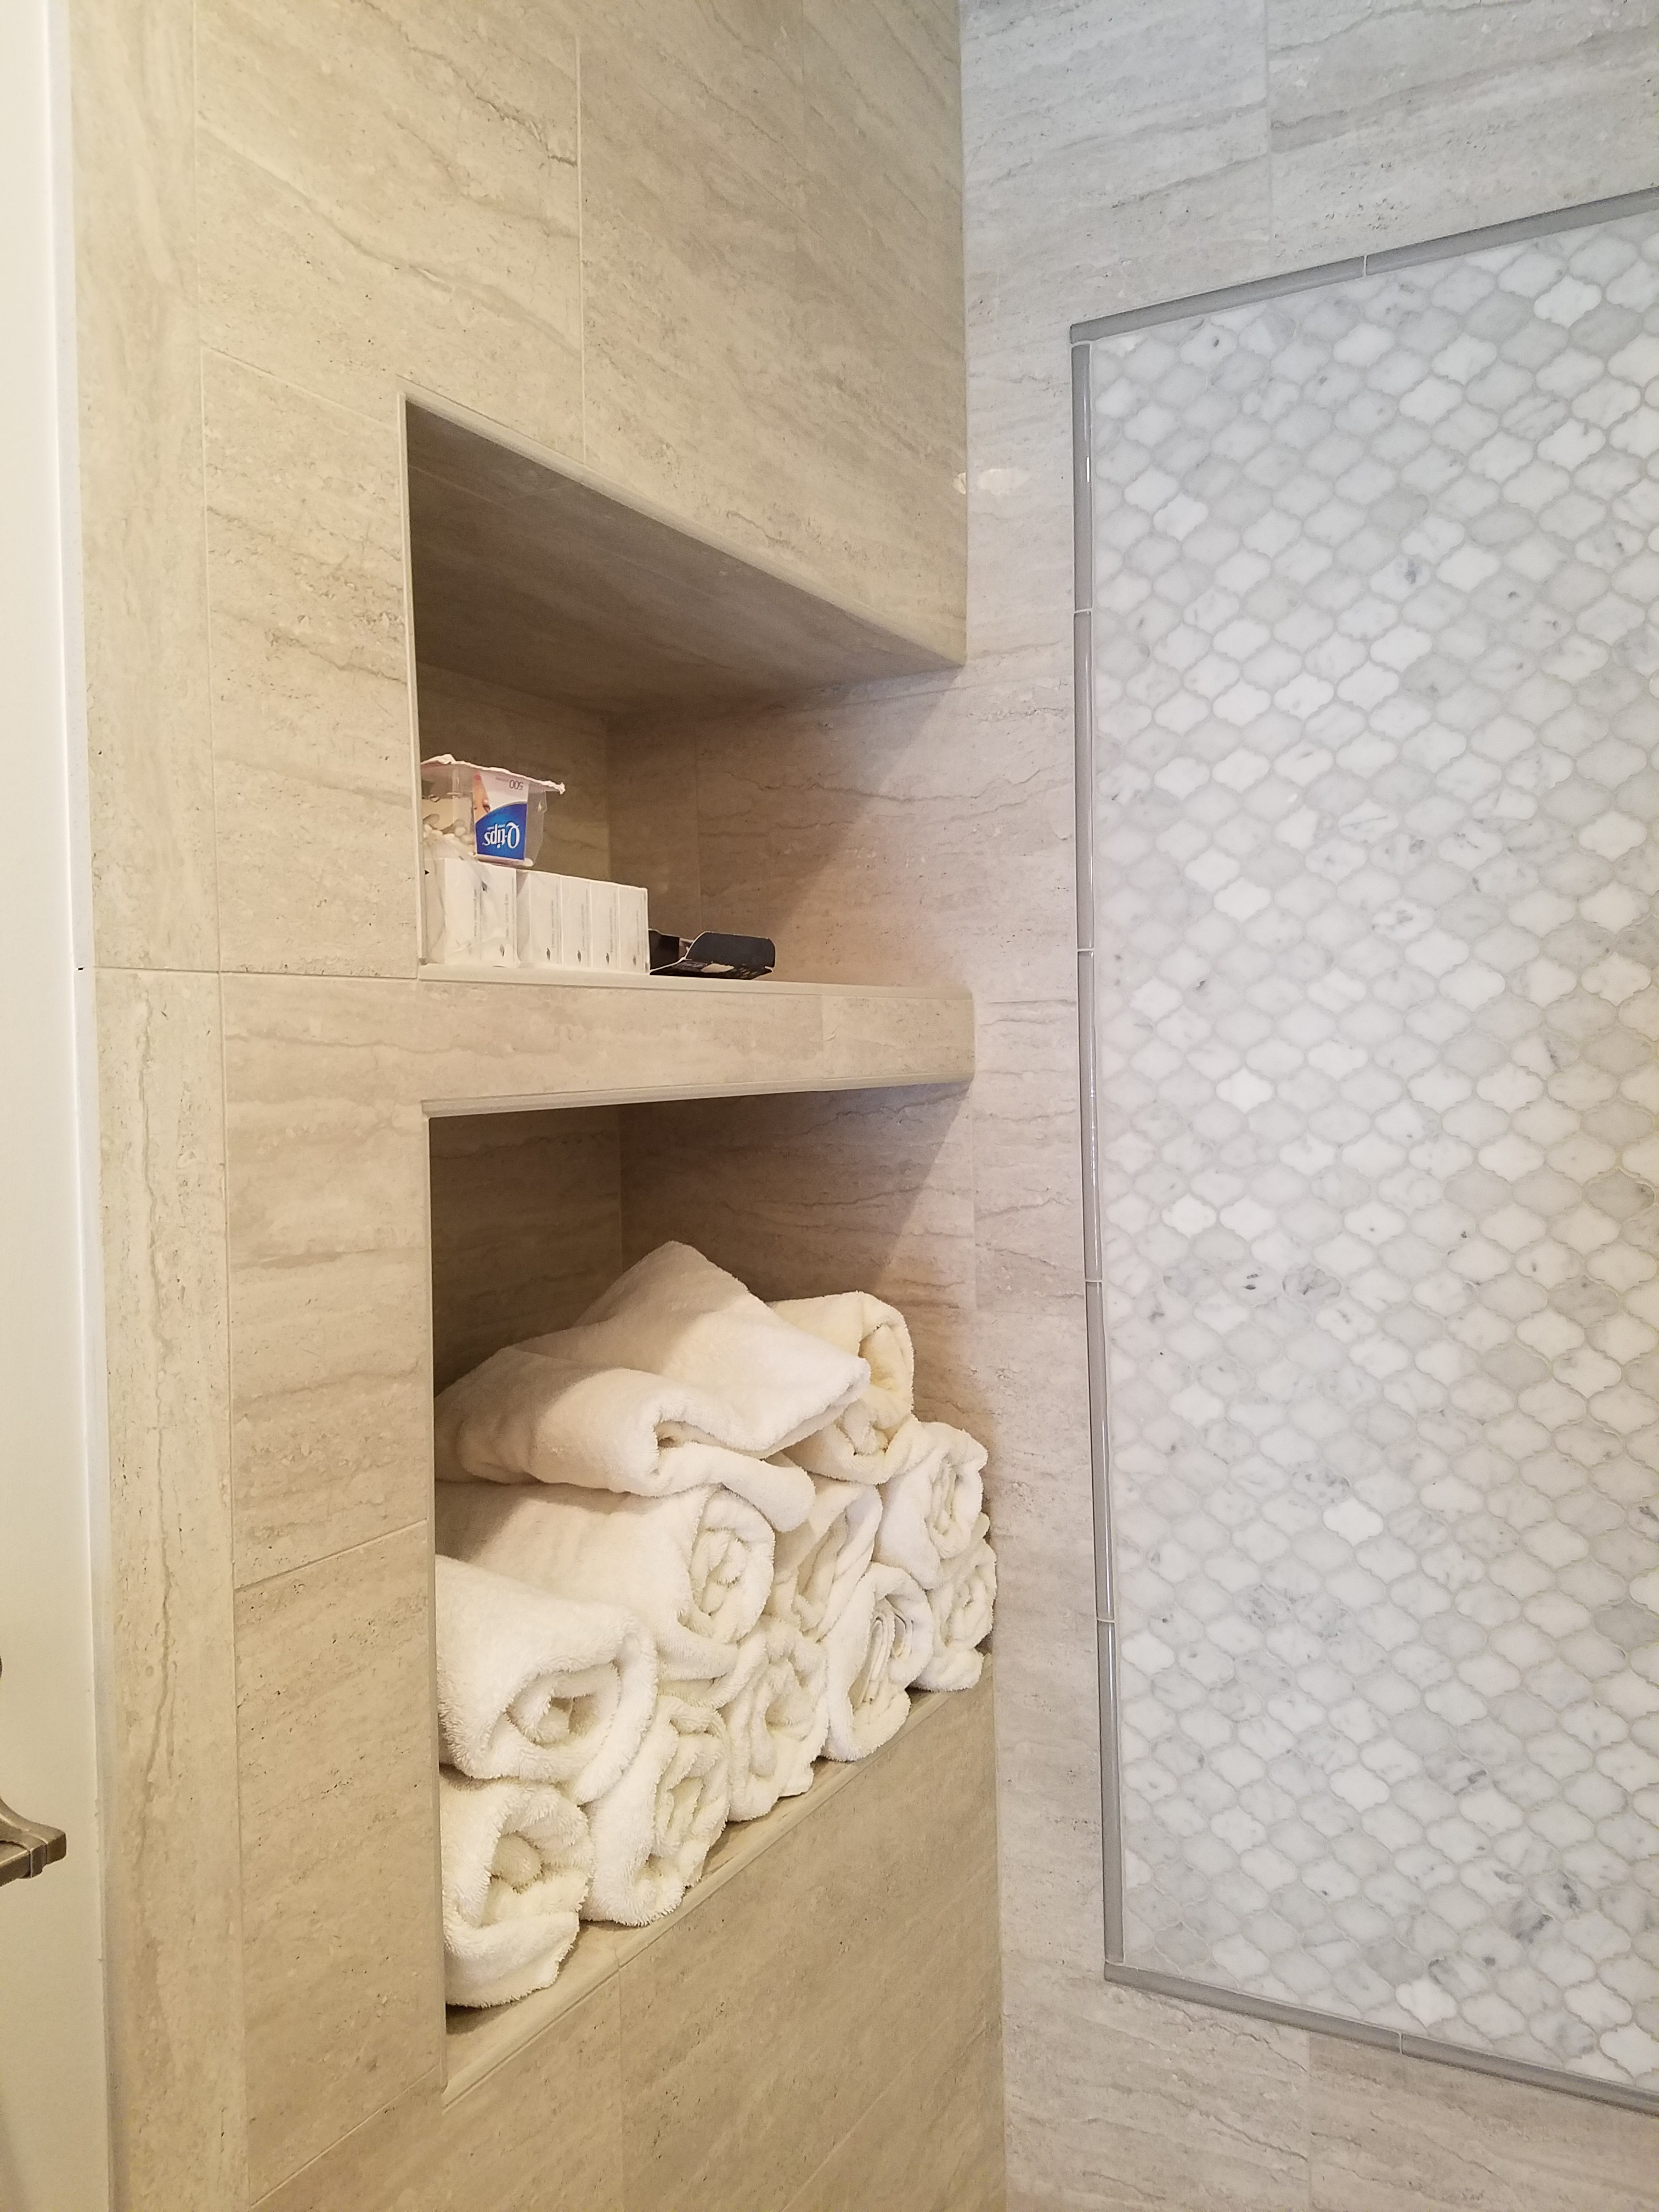 Recessed shelves in shower